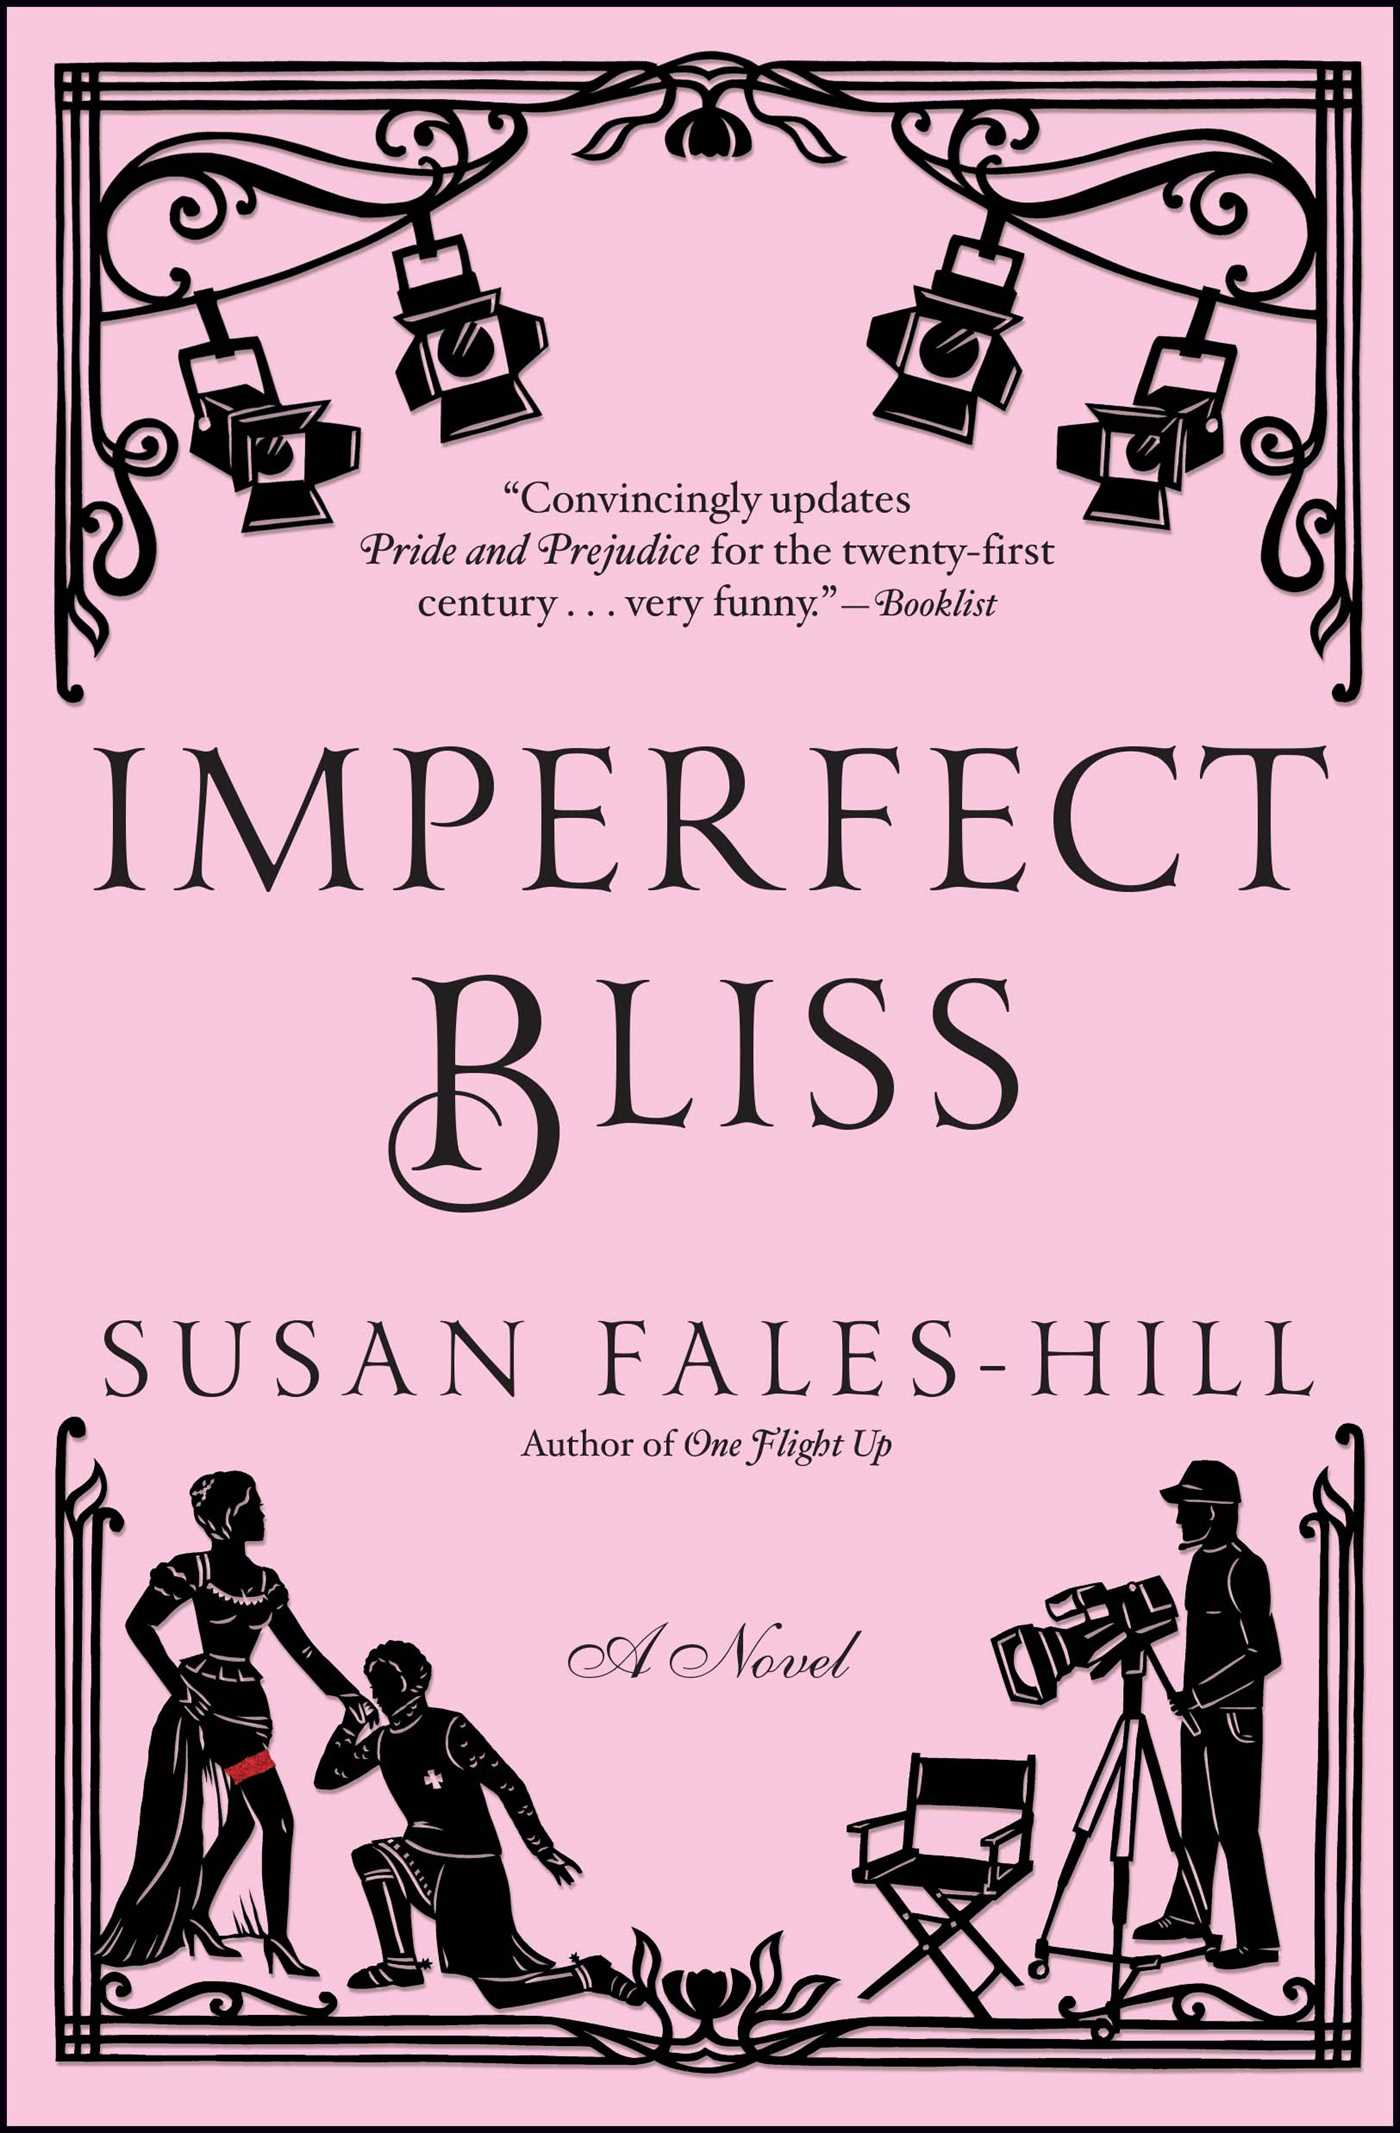 Imperfect-bliss-9781451623840_hr